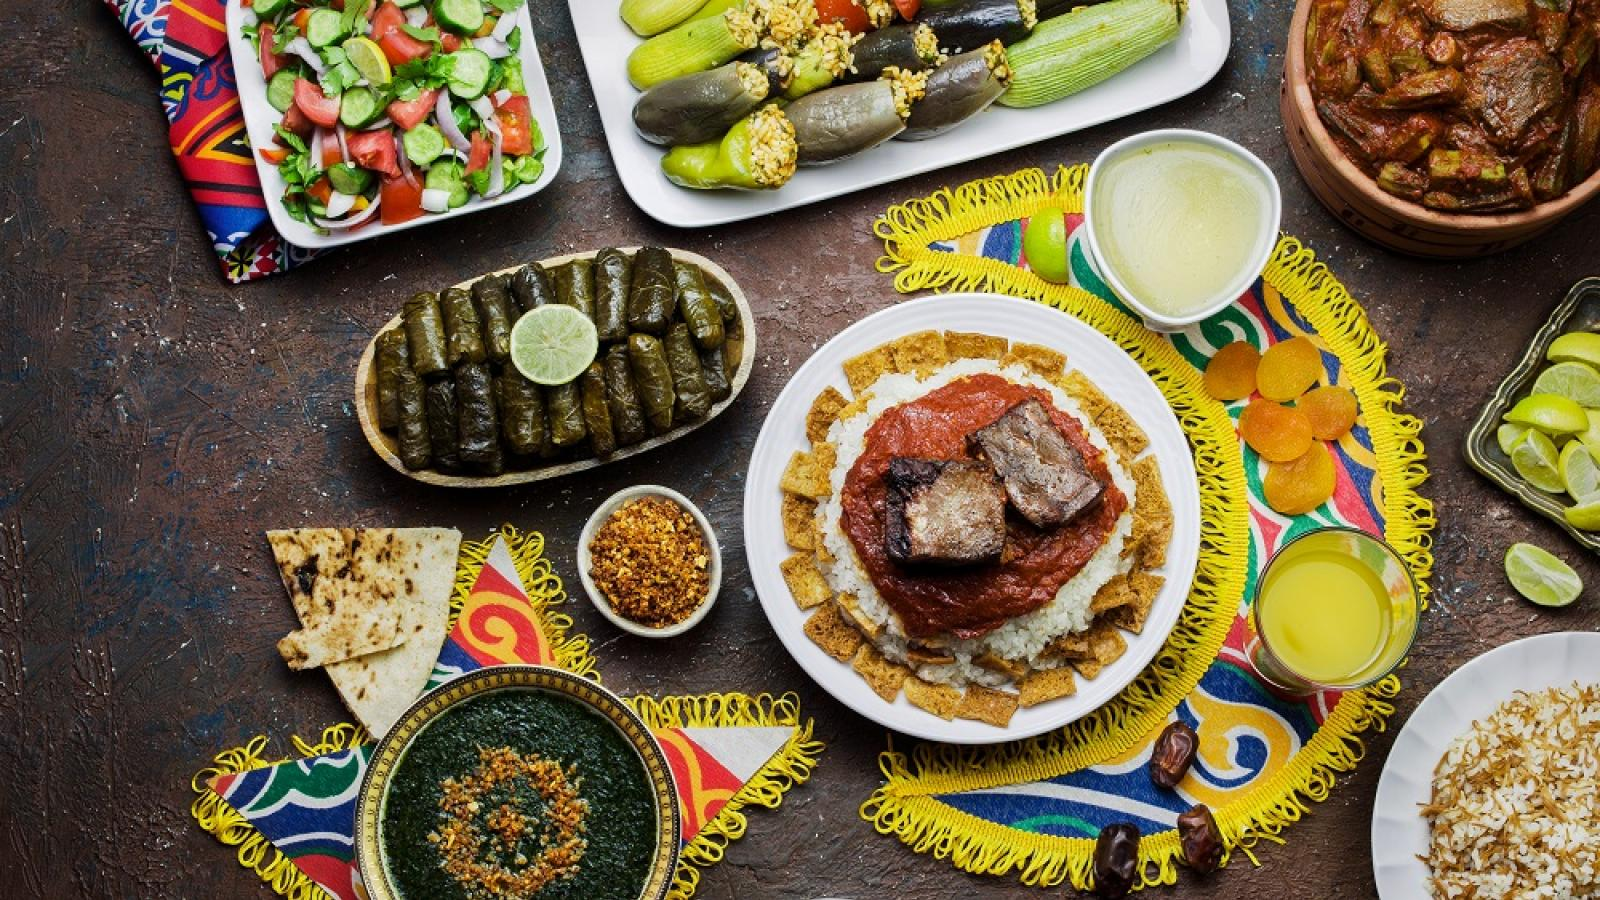 What to eat during Ramadan? Here is a complete meal plan